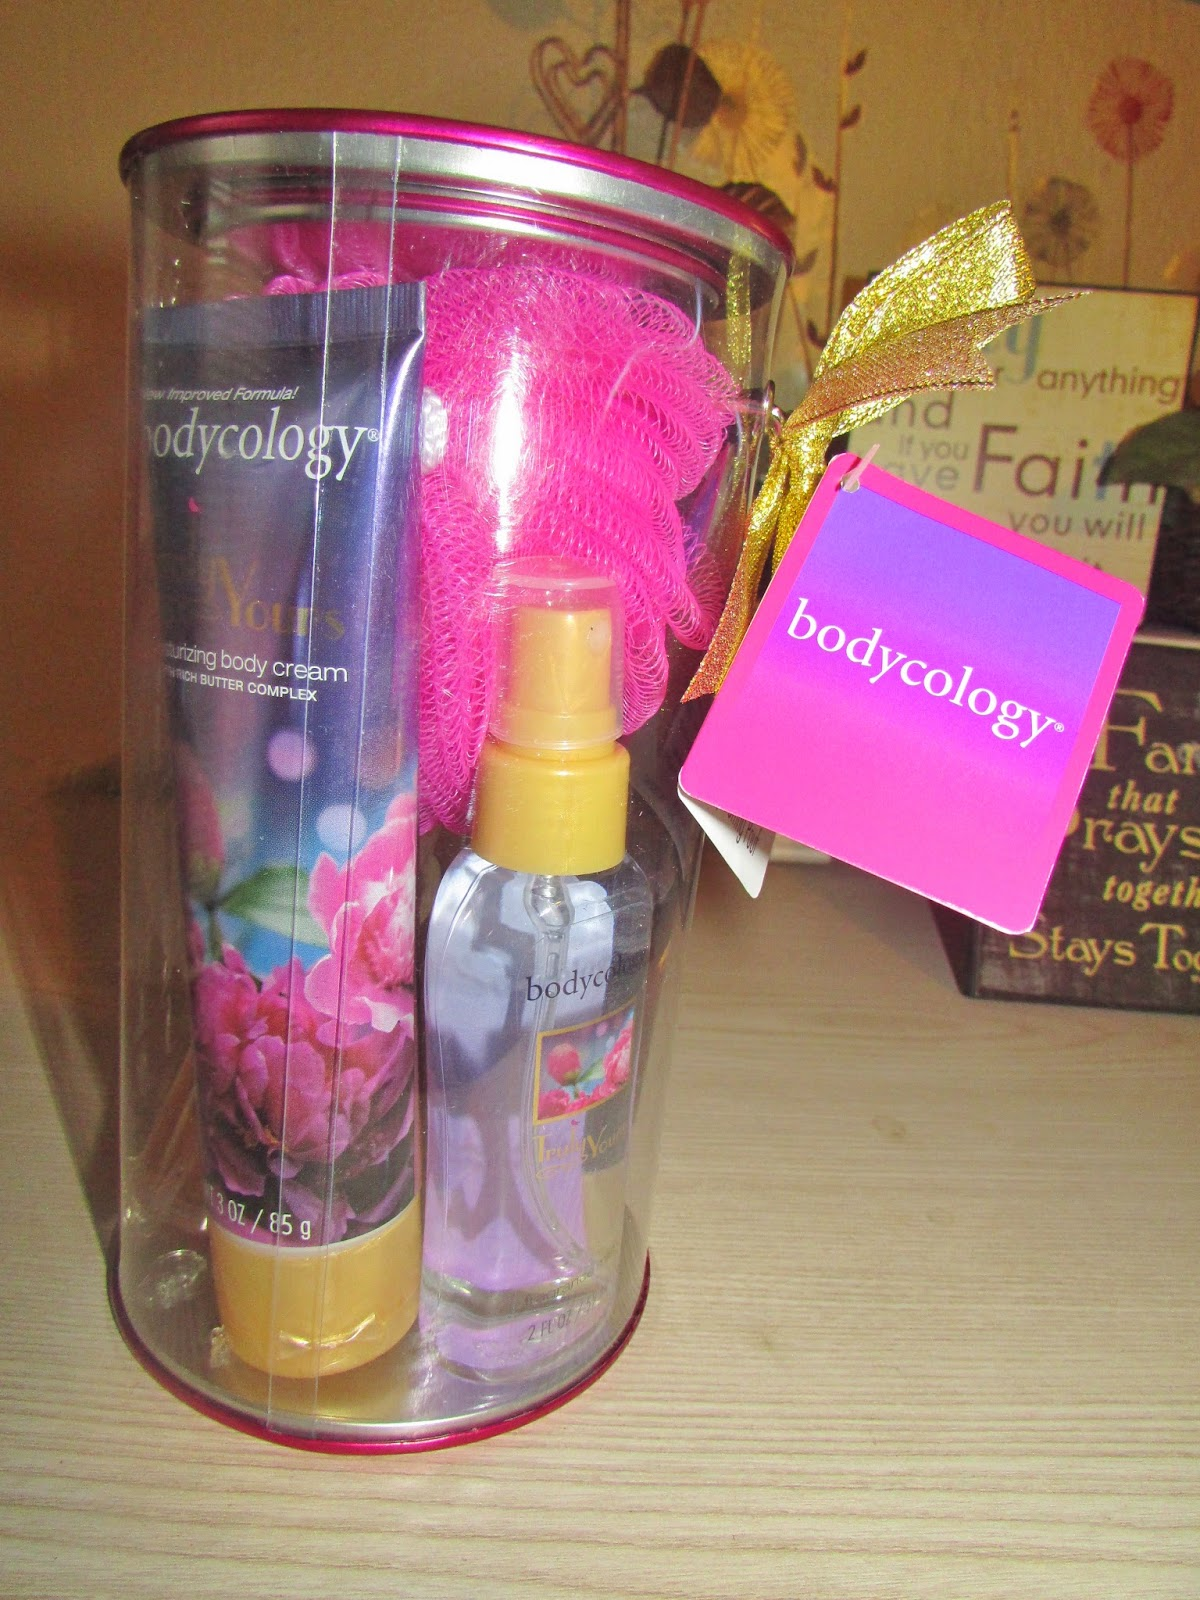 i have four girls between the ages of 12 and 20 i usually purchase gift sets for them as christmas gifts